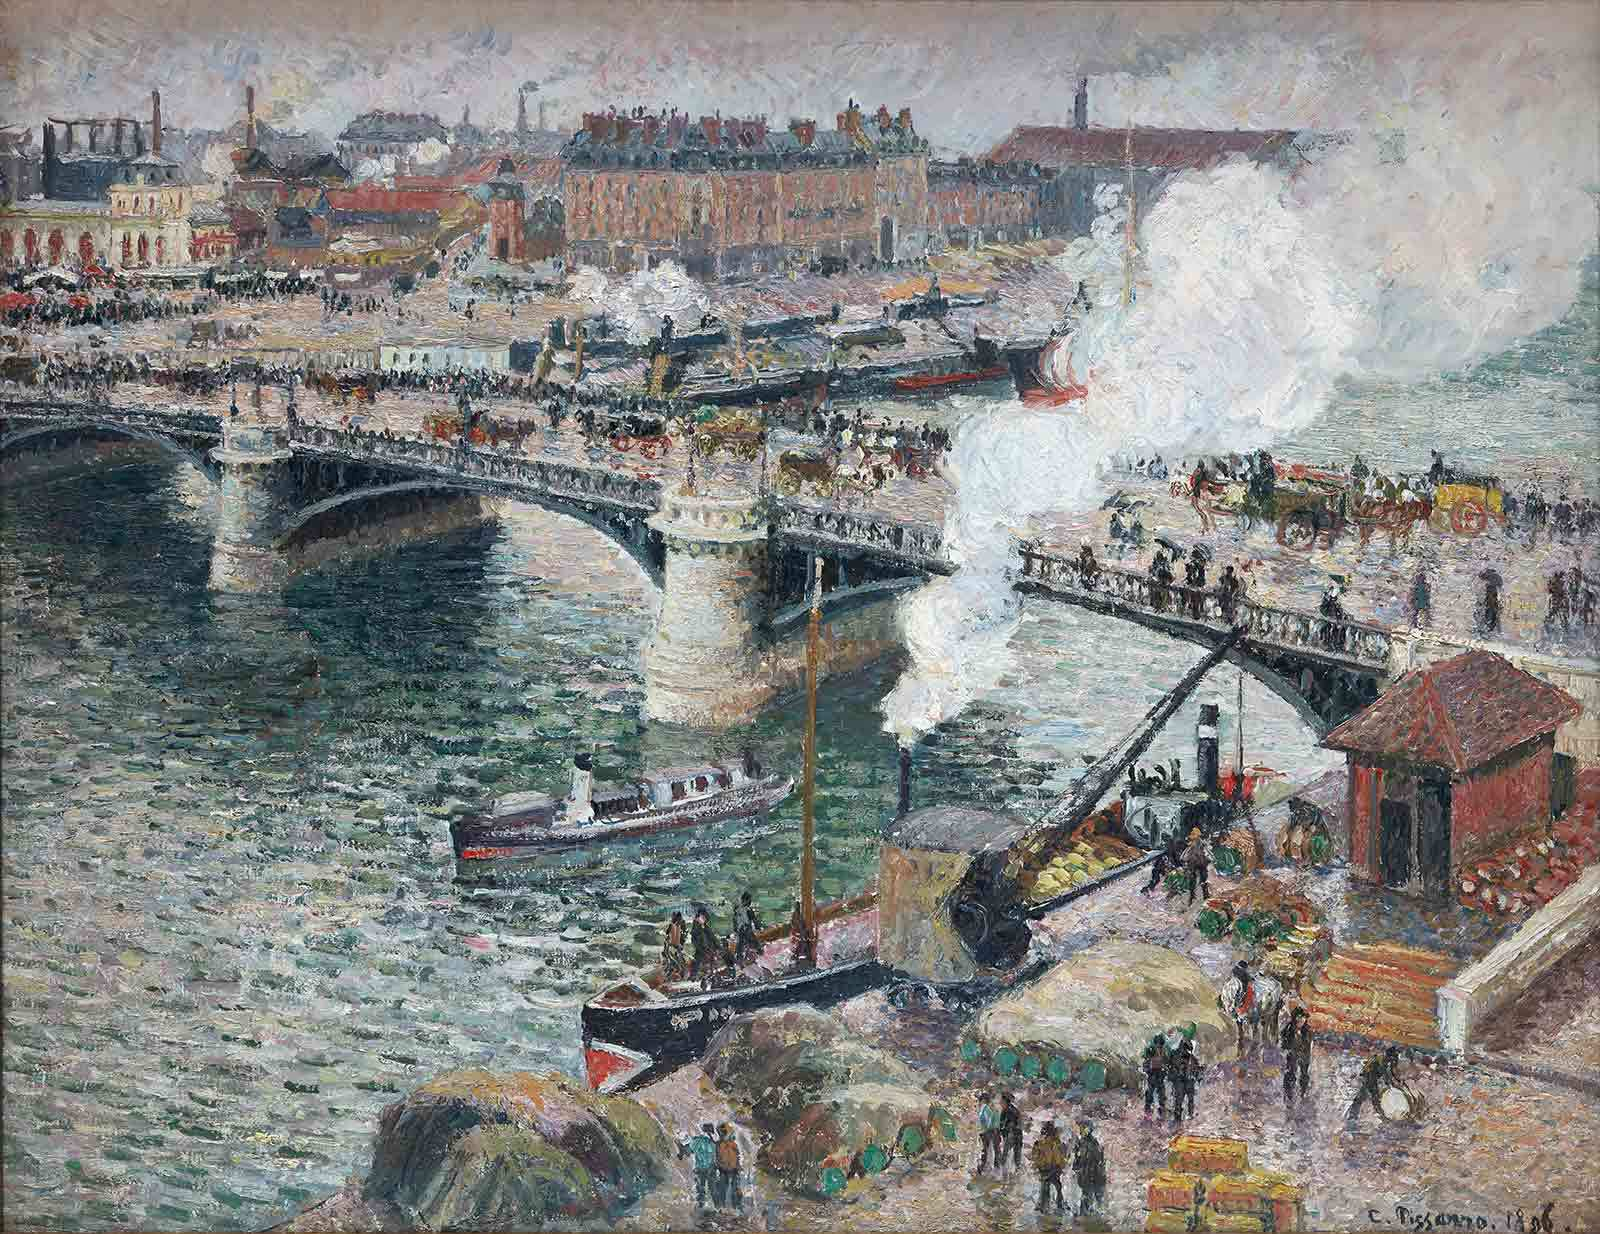 """Camille Pissarro's 1896 oil painting, """"Le pont Boieldieu à Rouen, temps mouillé"""" depicting an urban scene of a busy bridge with pedestrians and carriages, waterways with steam ships being loaded, and factories in the background."""